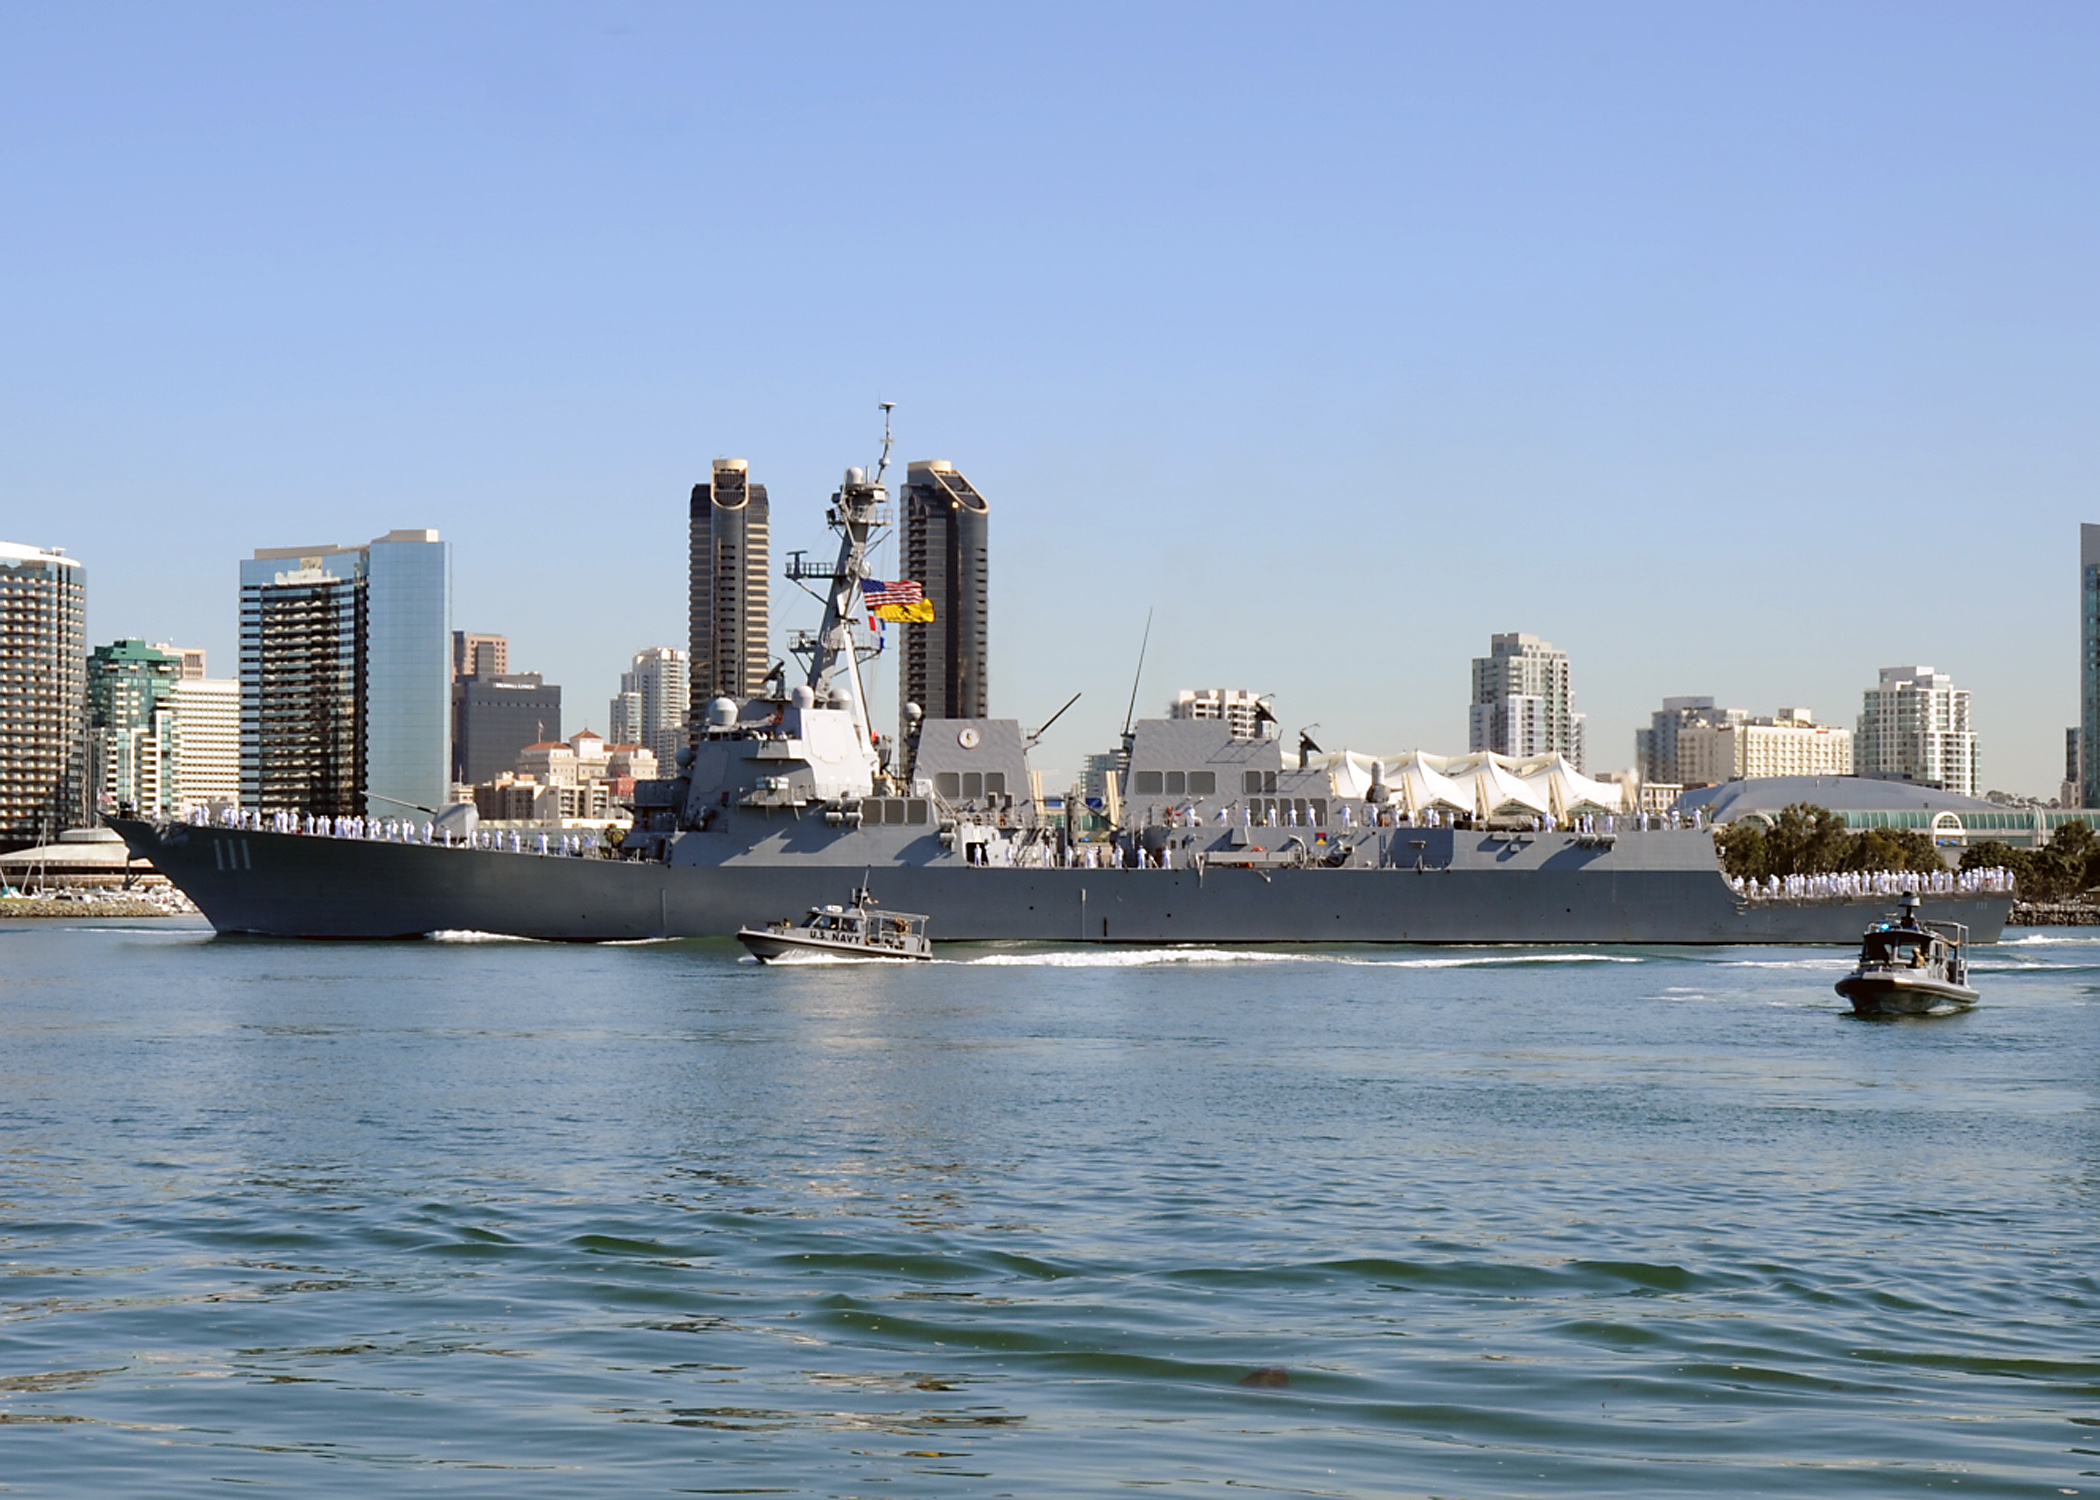 The guided-missile destroyer USS Spruance in San Diego Bay. Navy photo